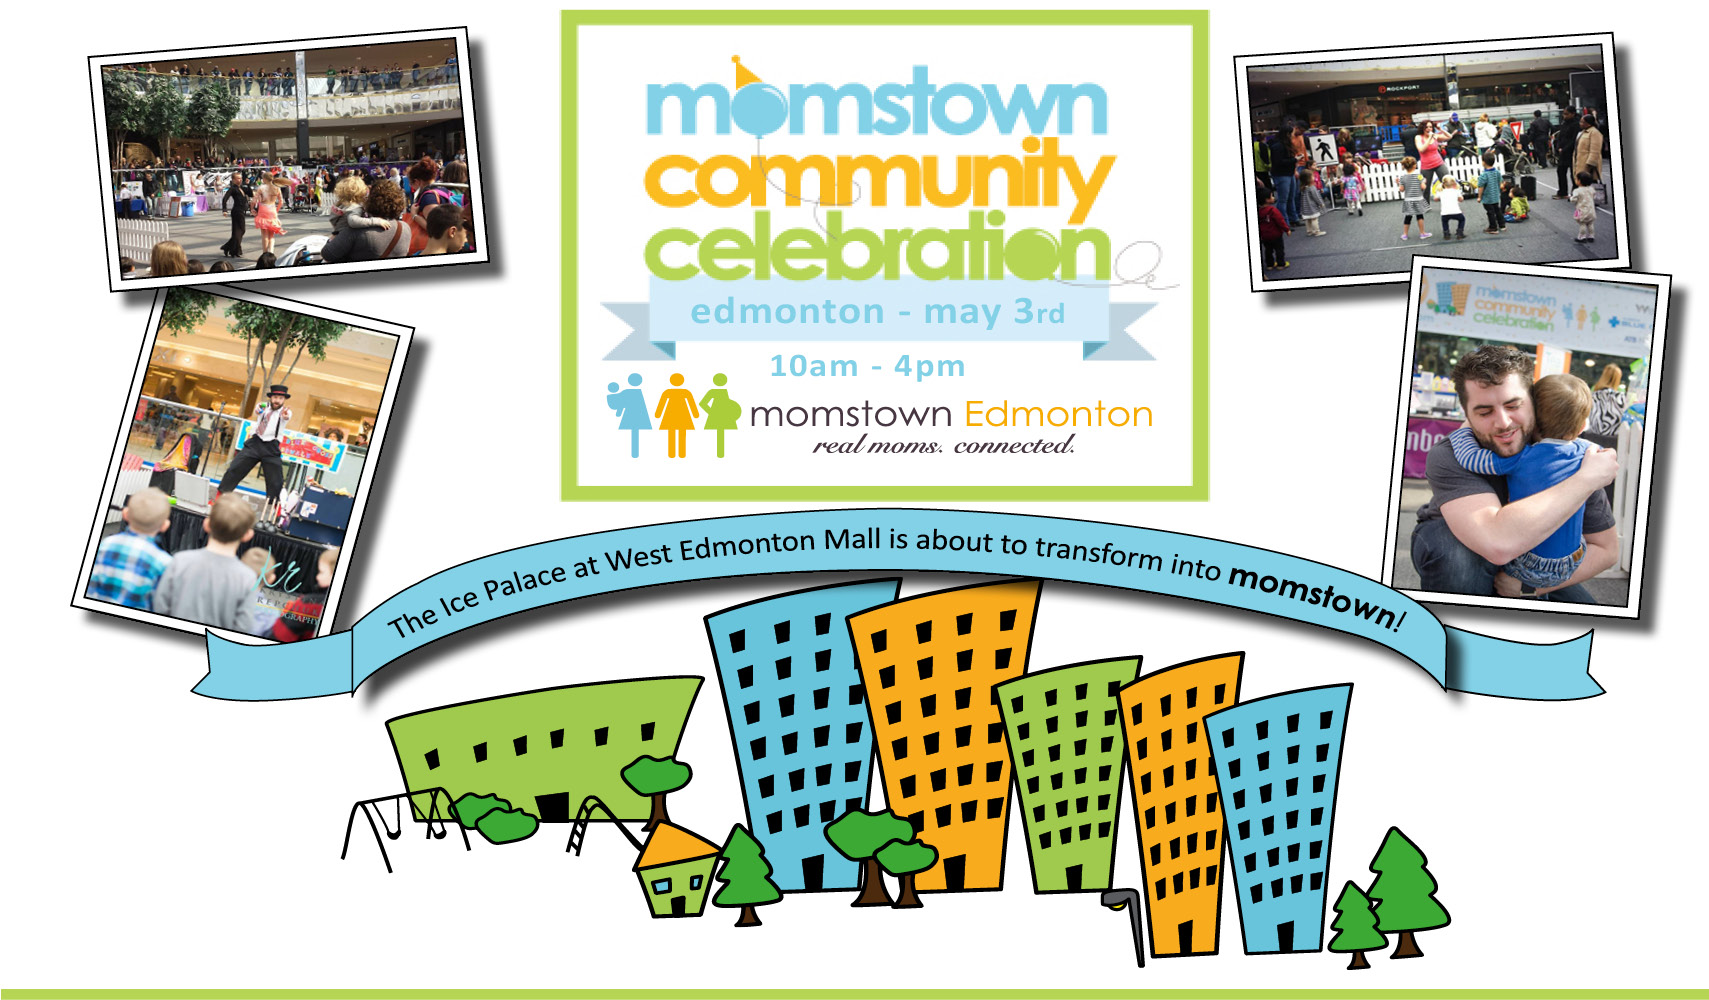 momstown community celebration 2015